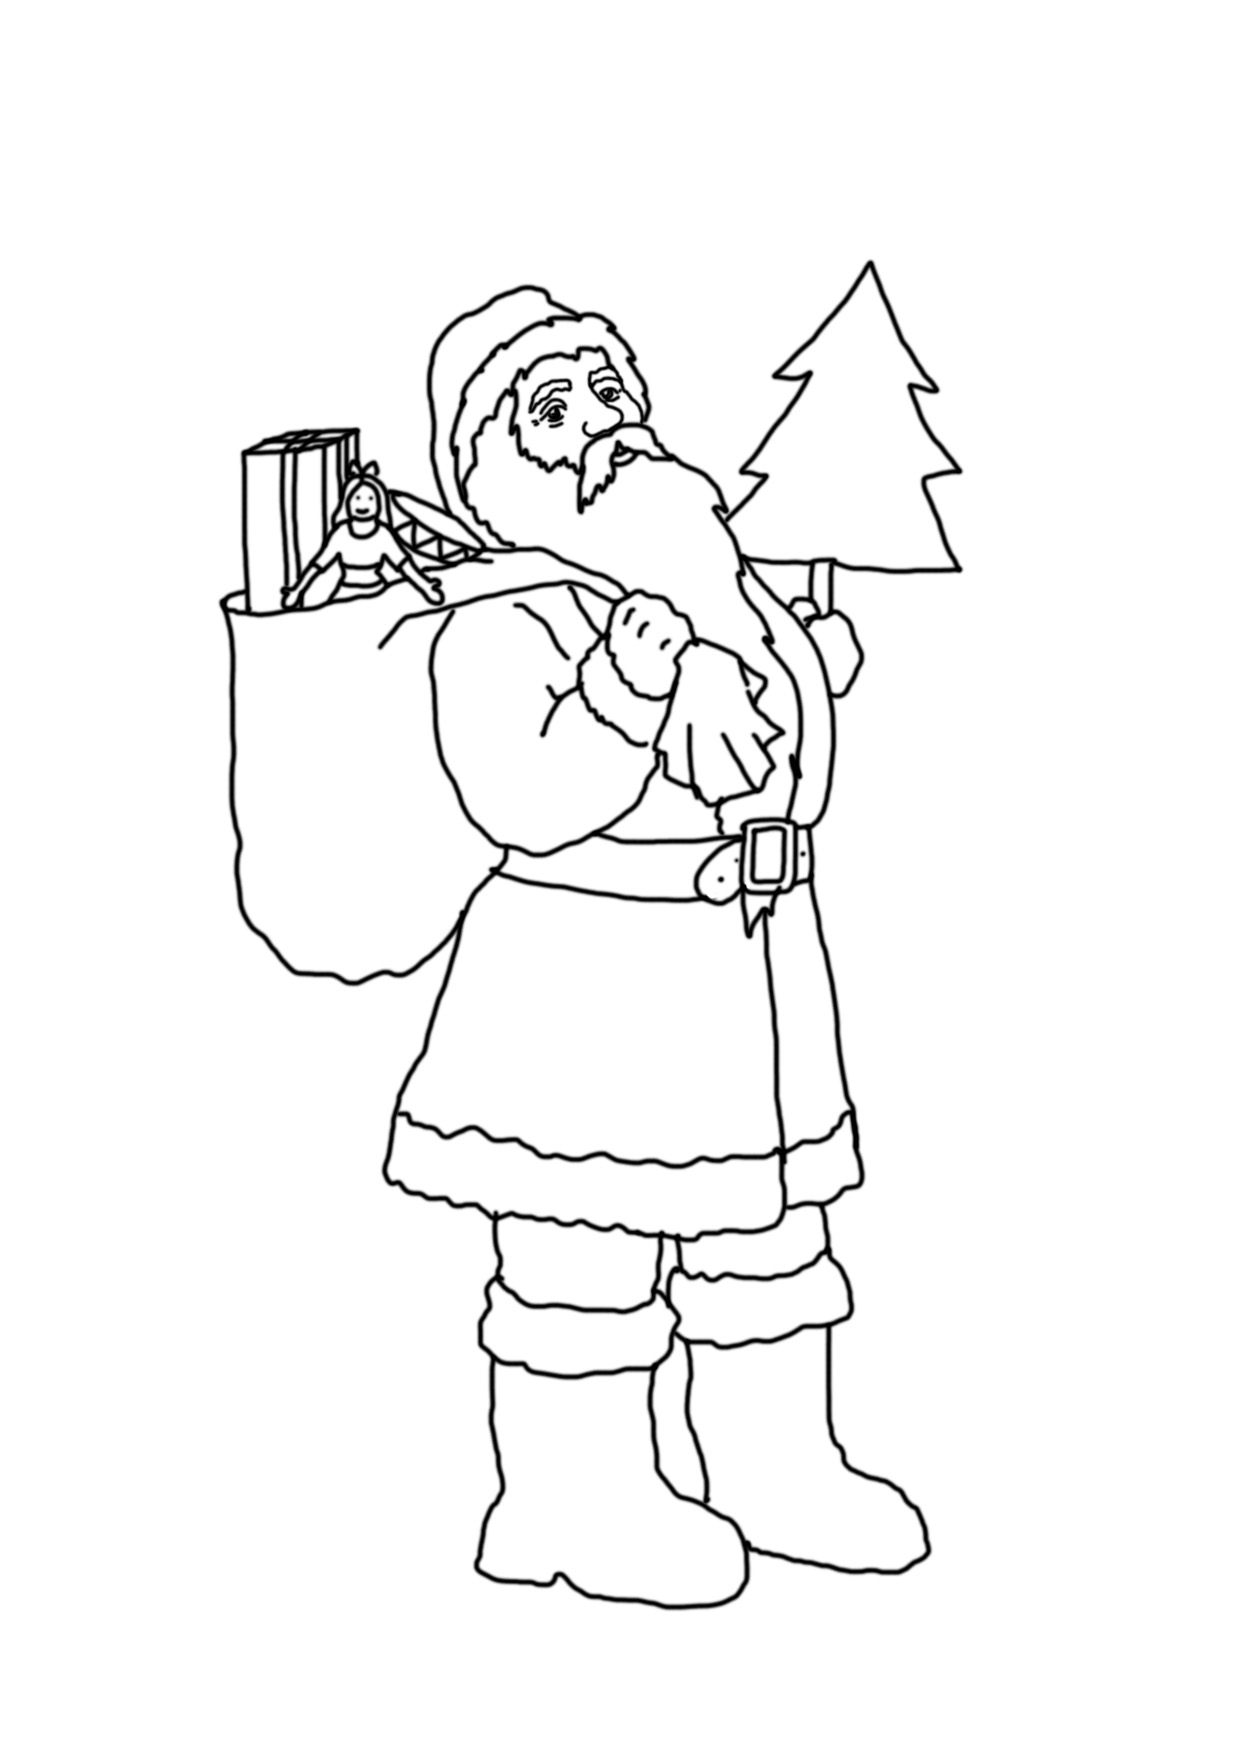 Santa with sack and Christmas tree